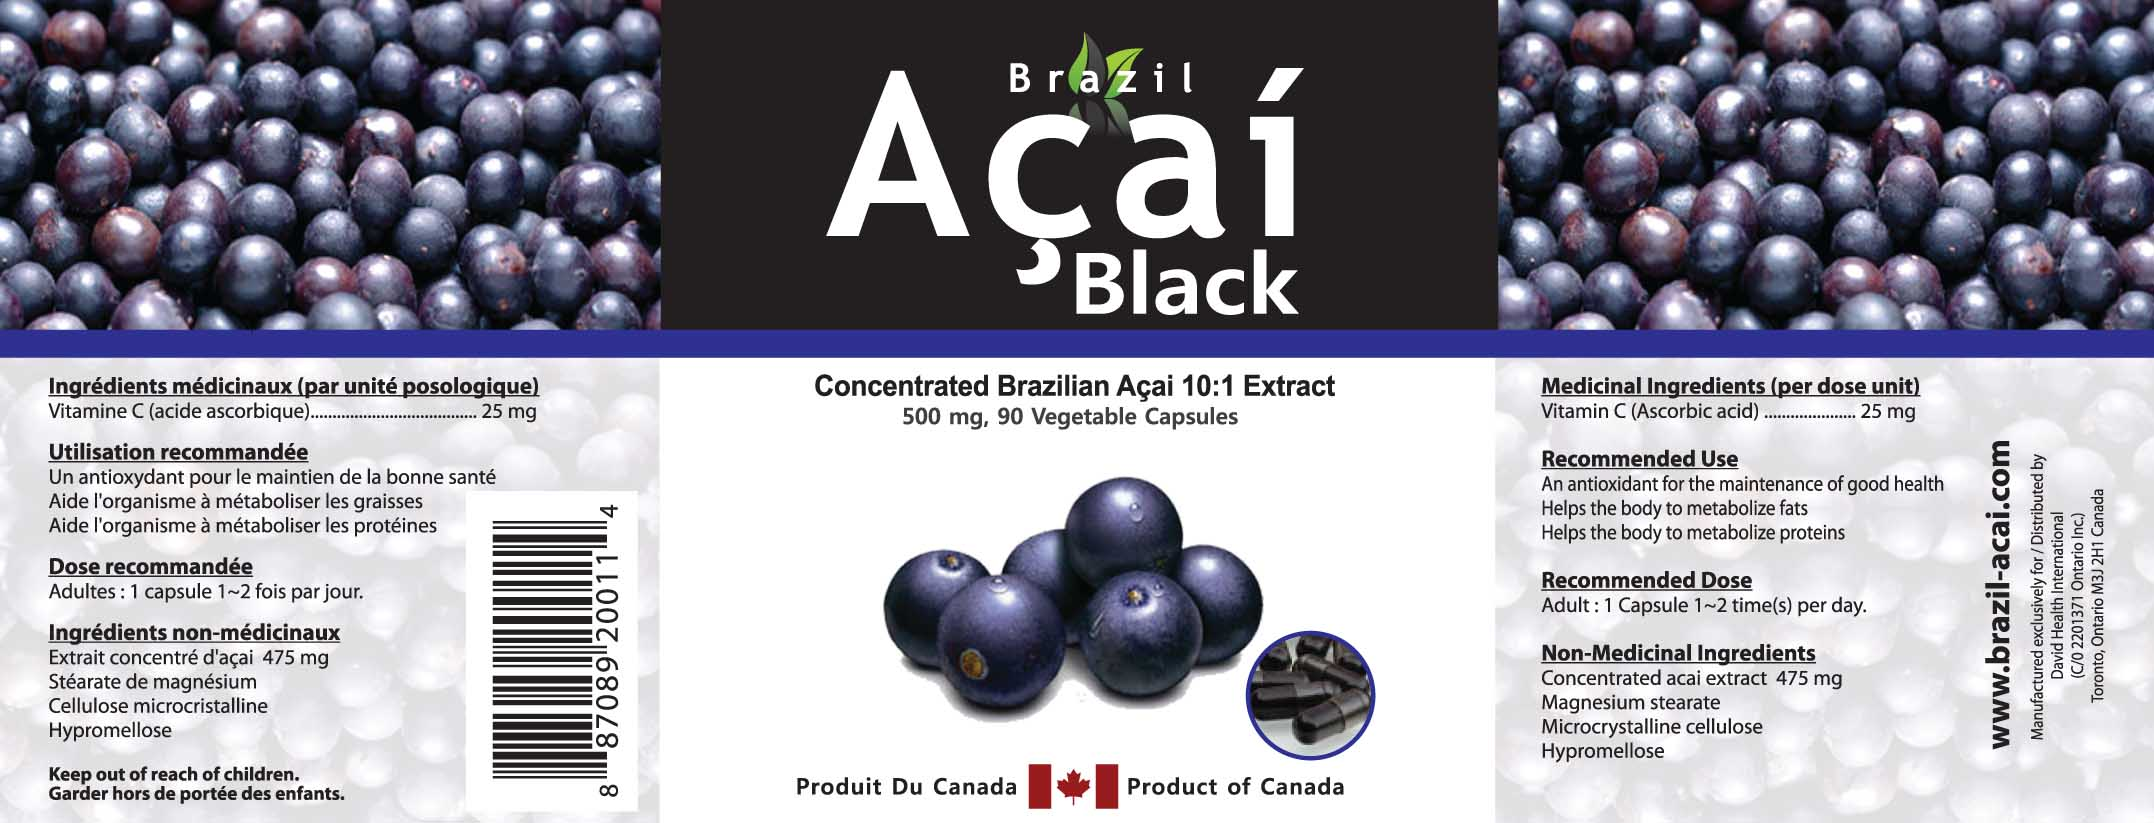 BRAZIL ACAI BLACK 10:1 CONCENTRATED